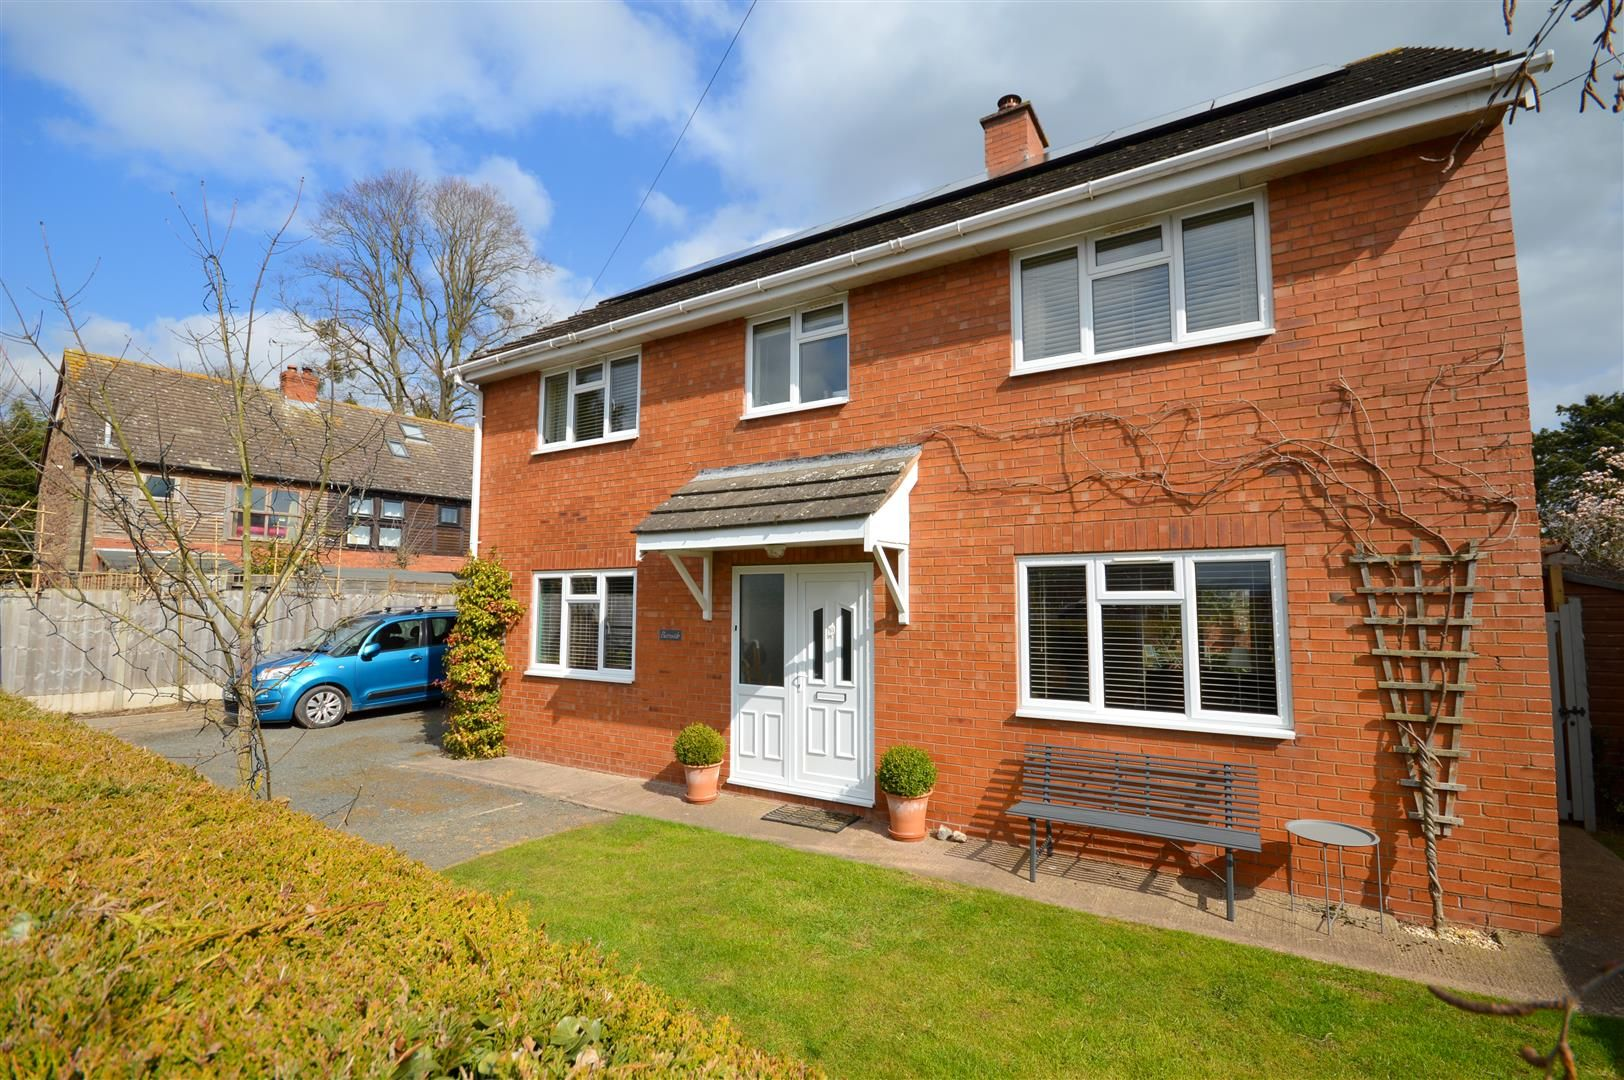 3 bed detached for sale in Eaton Bishop, HR2